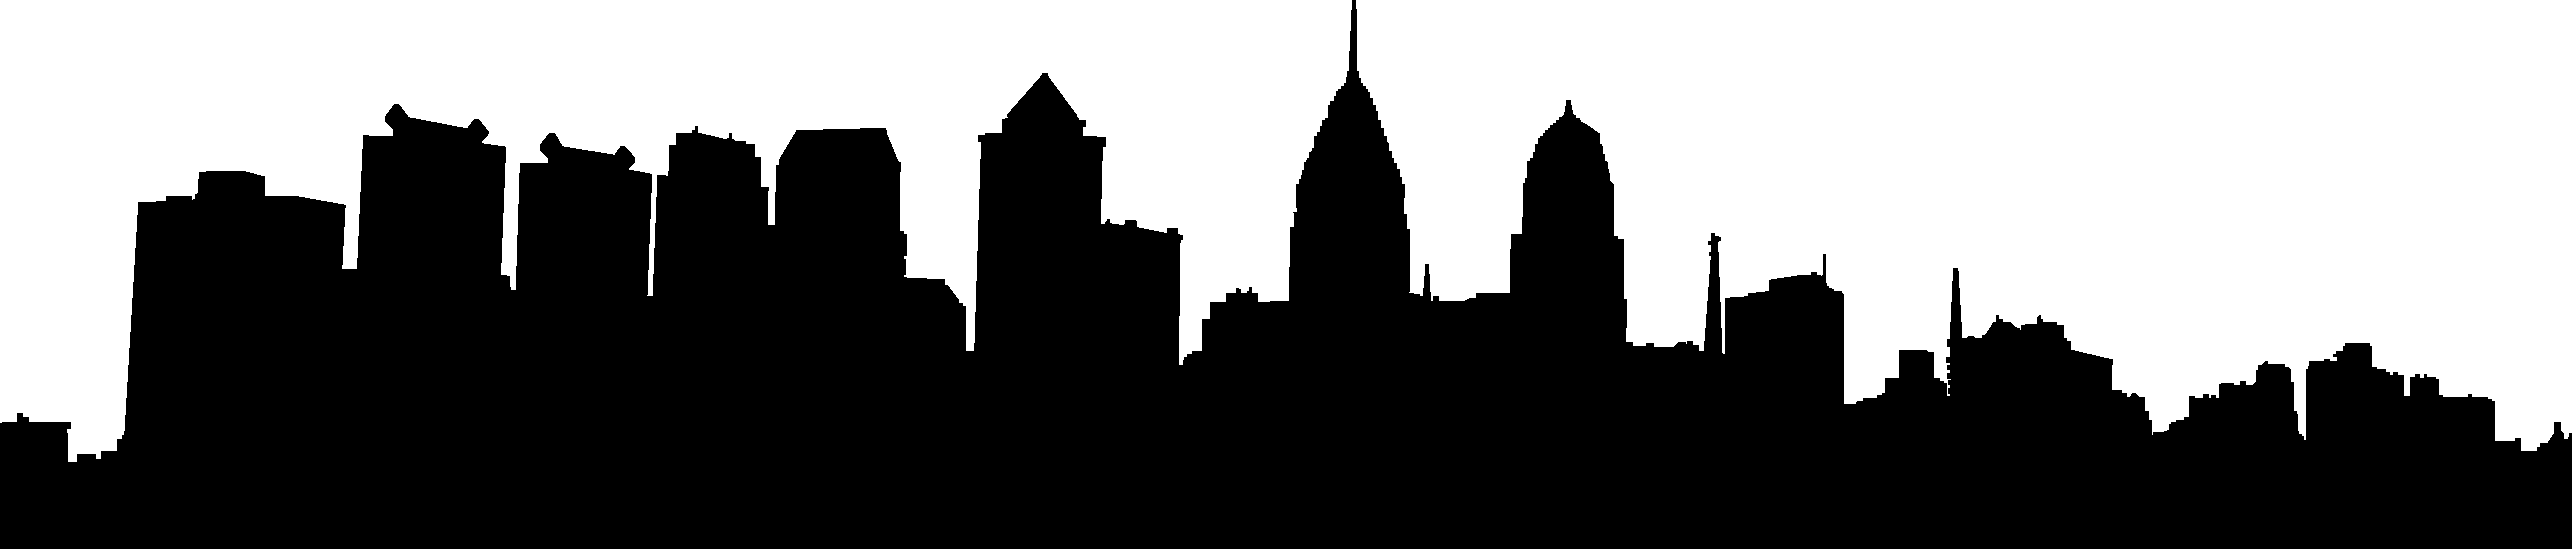 2572x549 City Skyline Silhouette 02 Vector Eps Free Download, Logo, Icons